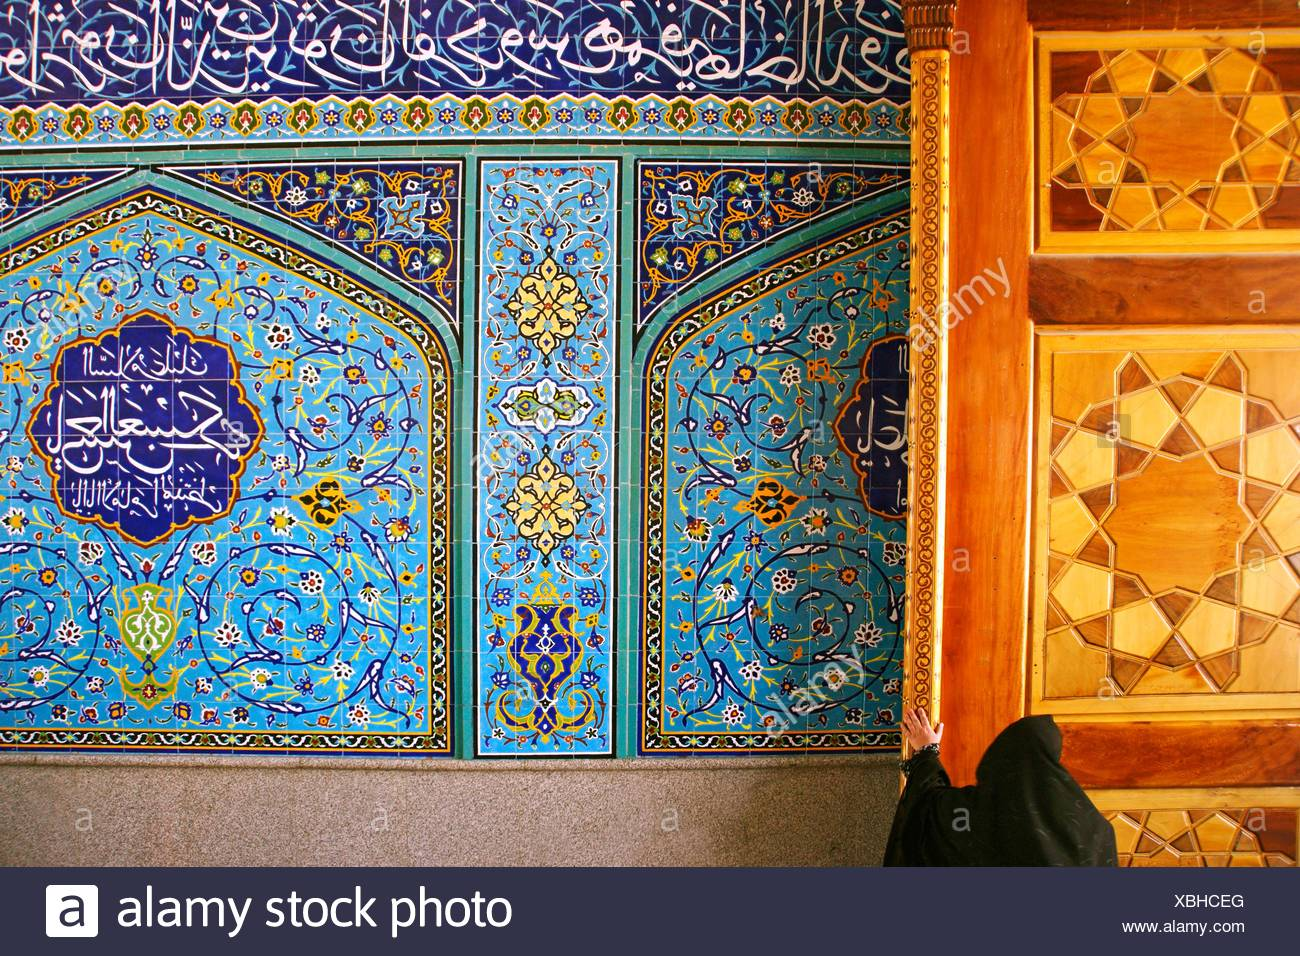 Zellige ceramic tiles decoration on the walls of the shiite Mosque ...